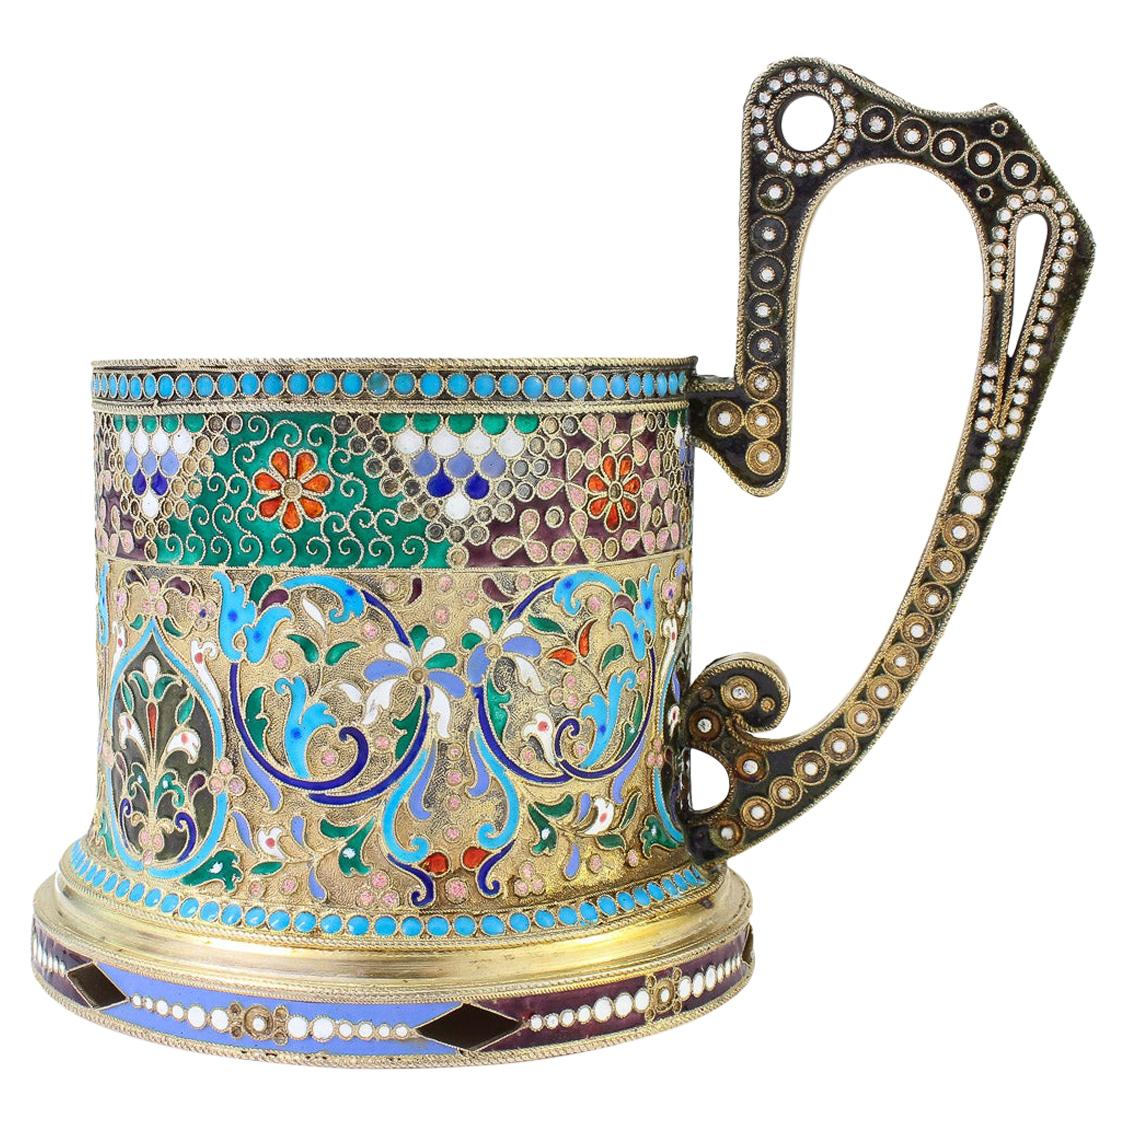 20th Century Imperial Russian Solid Silver-Gilt Enamel Tea Glass Holder, c.1900